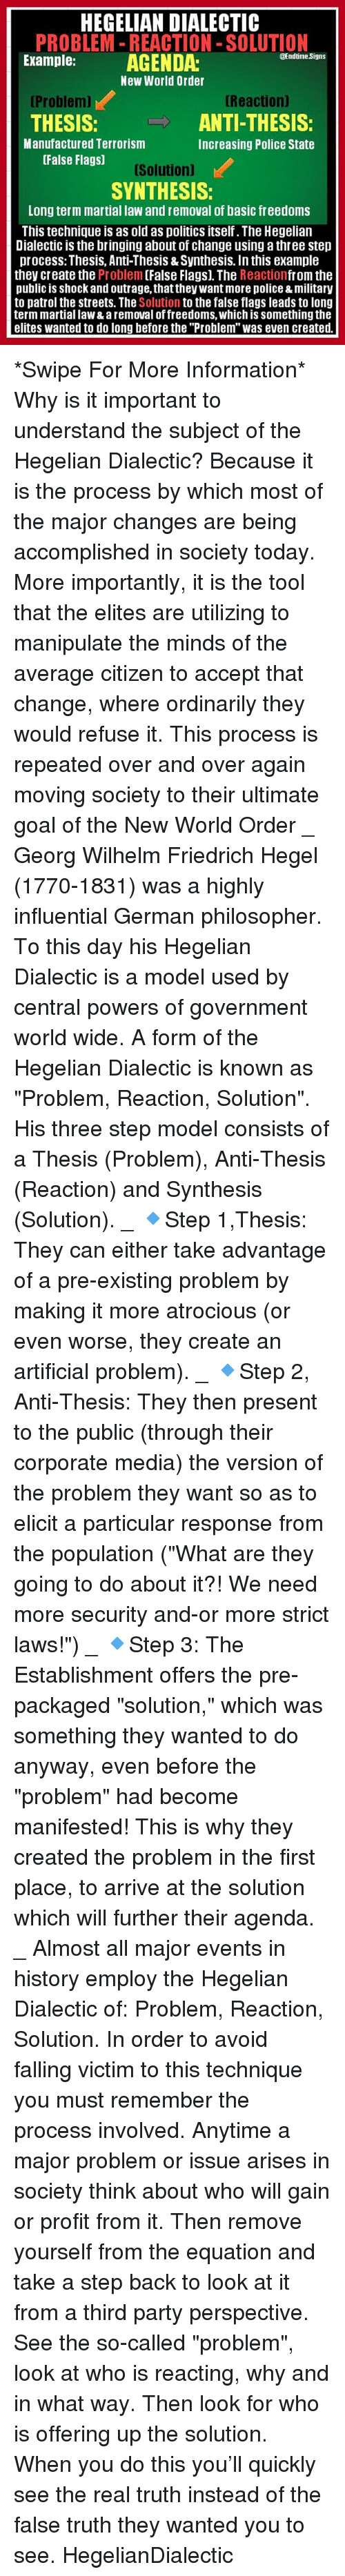 hegelian law of thesis Similarities between aquinas on natural law and aristotle on question about marx and thesis/antithesis/synthesis the hegelian dialectic is (1) unity.